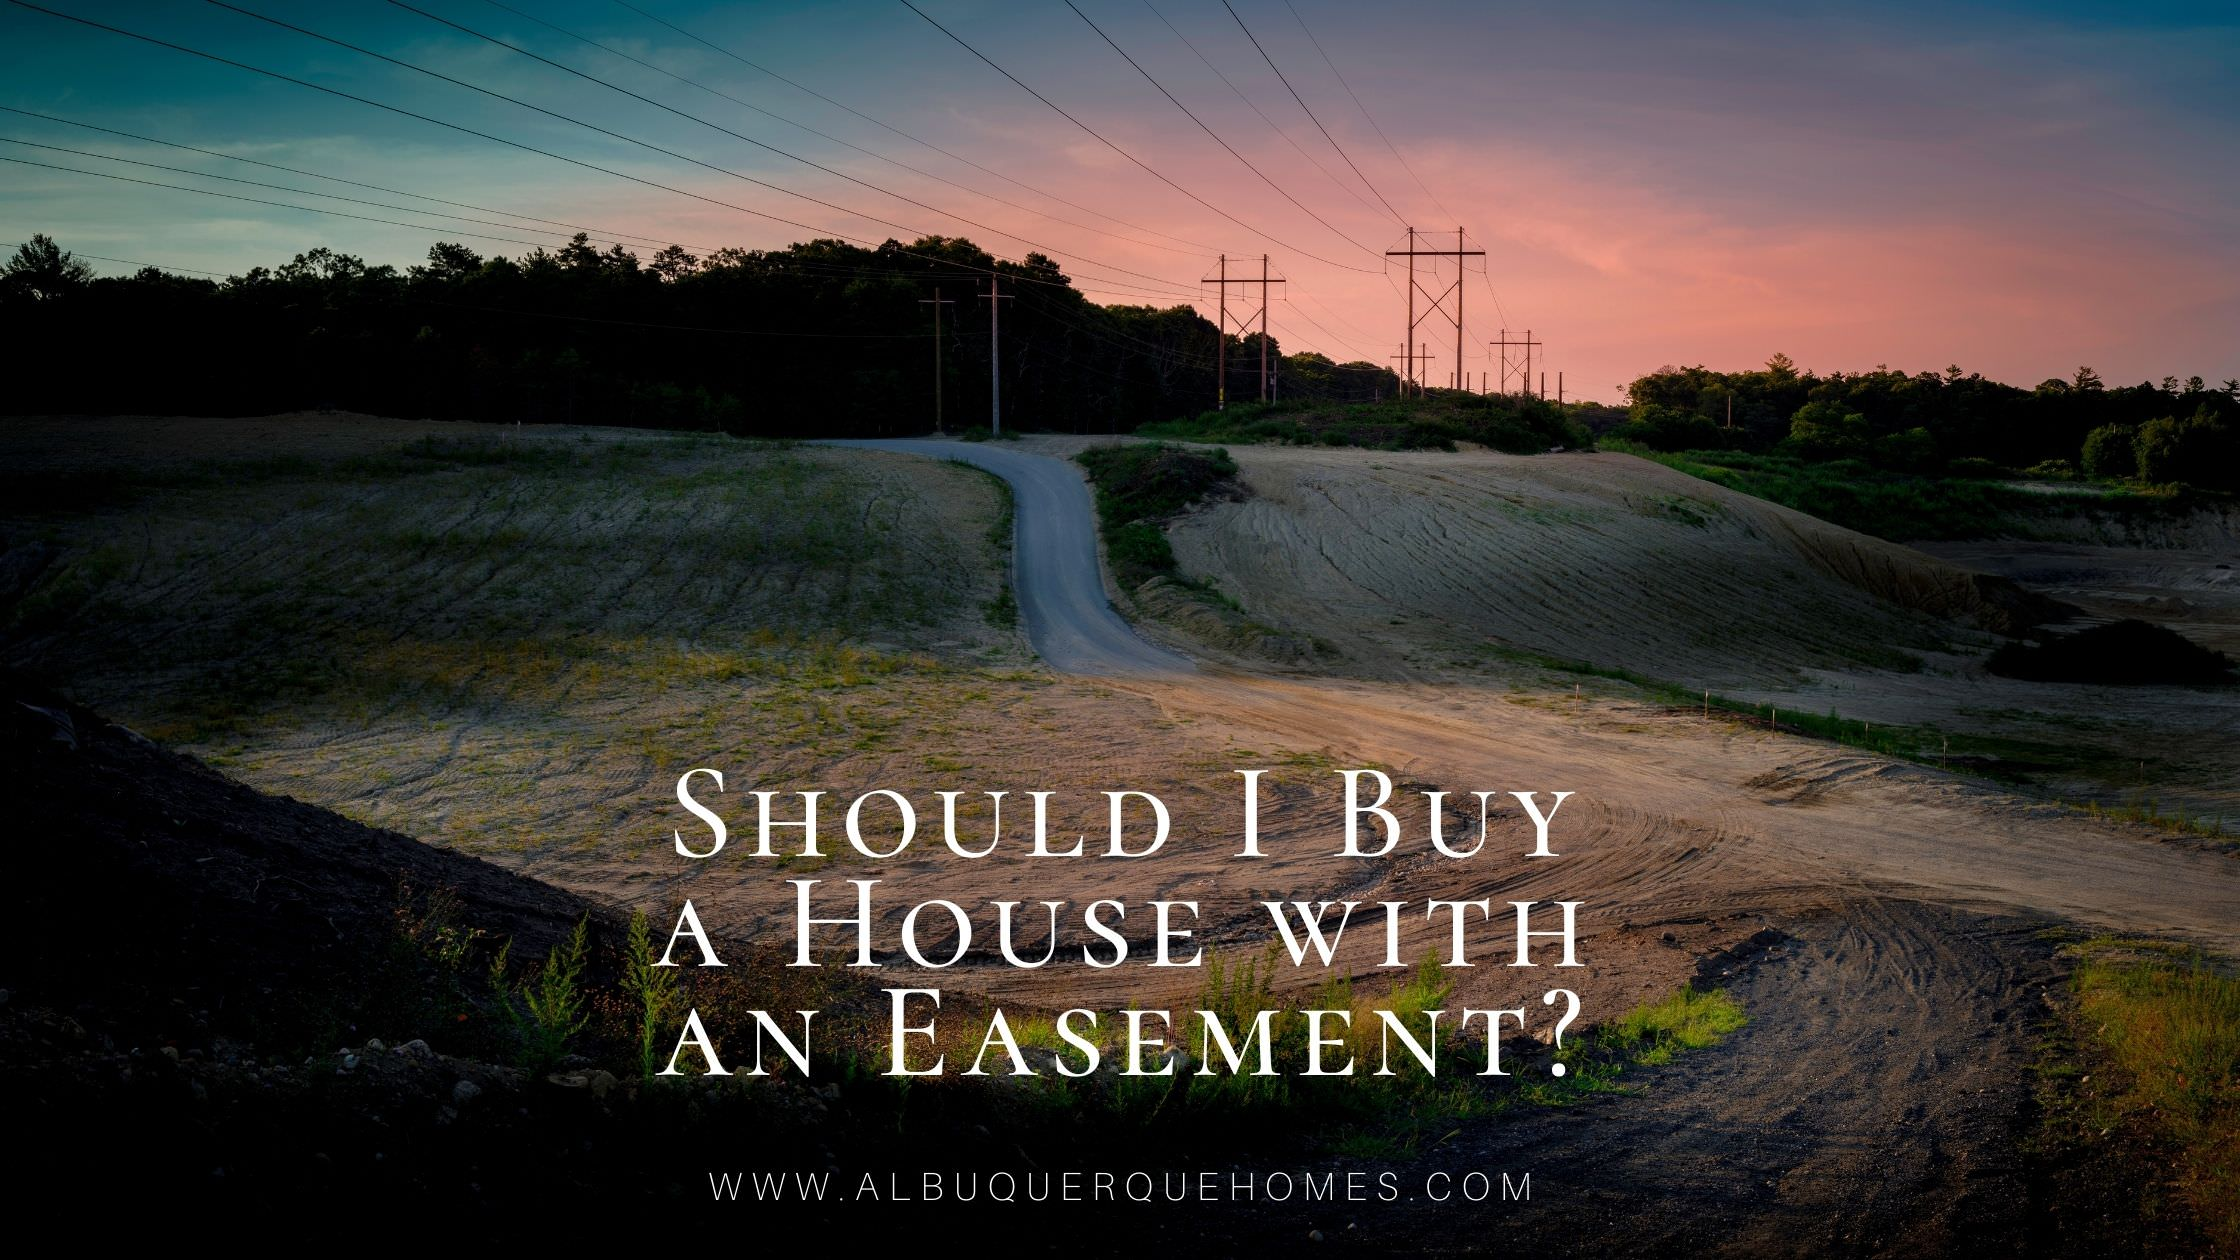 Should I Buy a House with an Easement?